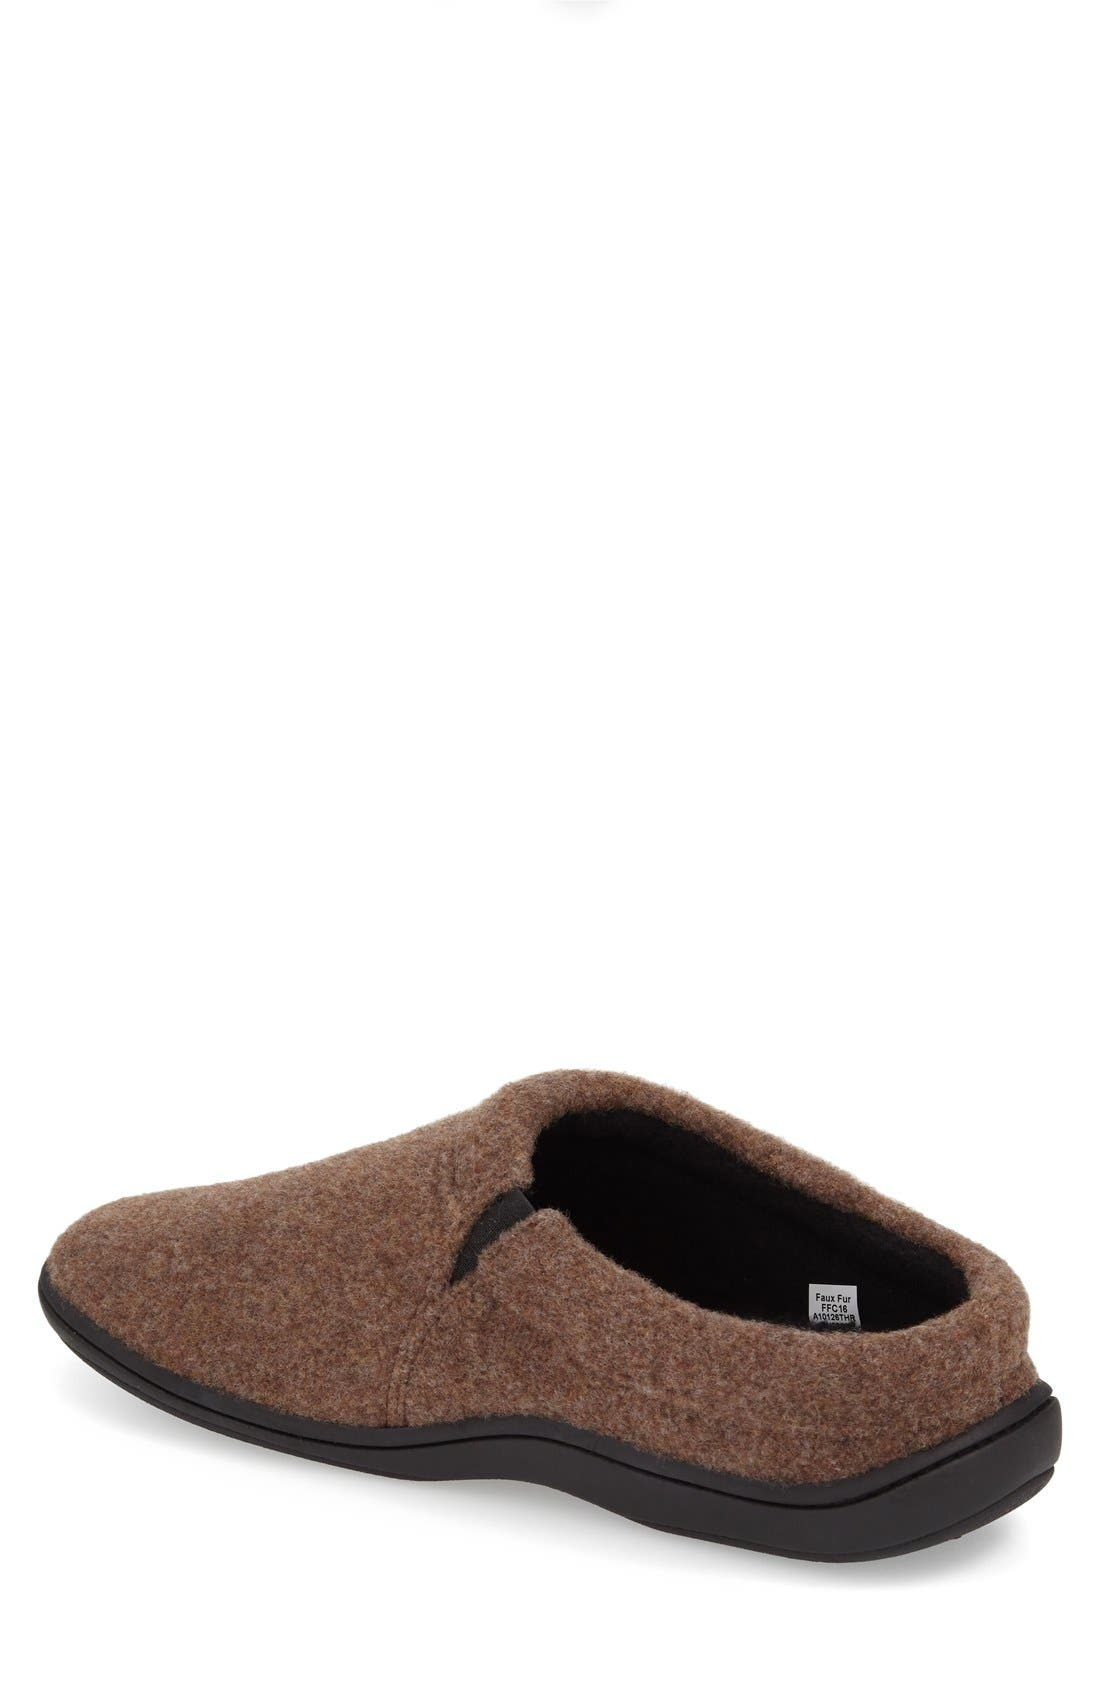 'Digby' Slipper,                             Alternate thumbnail 15, color,